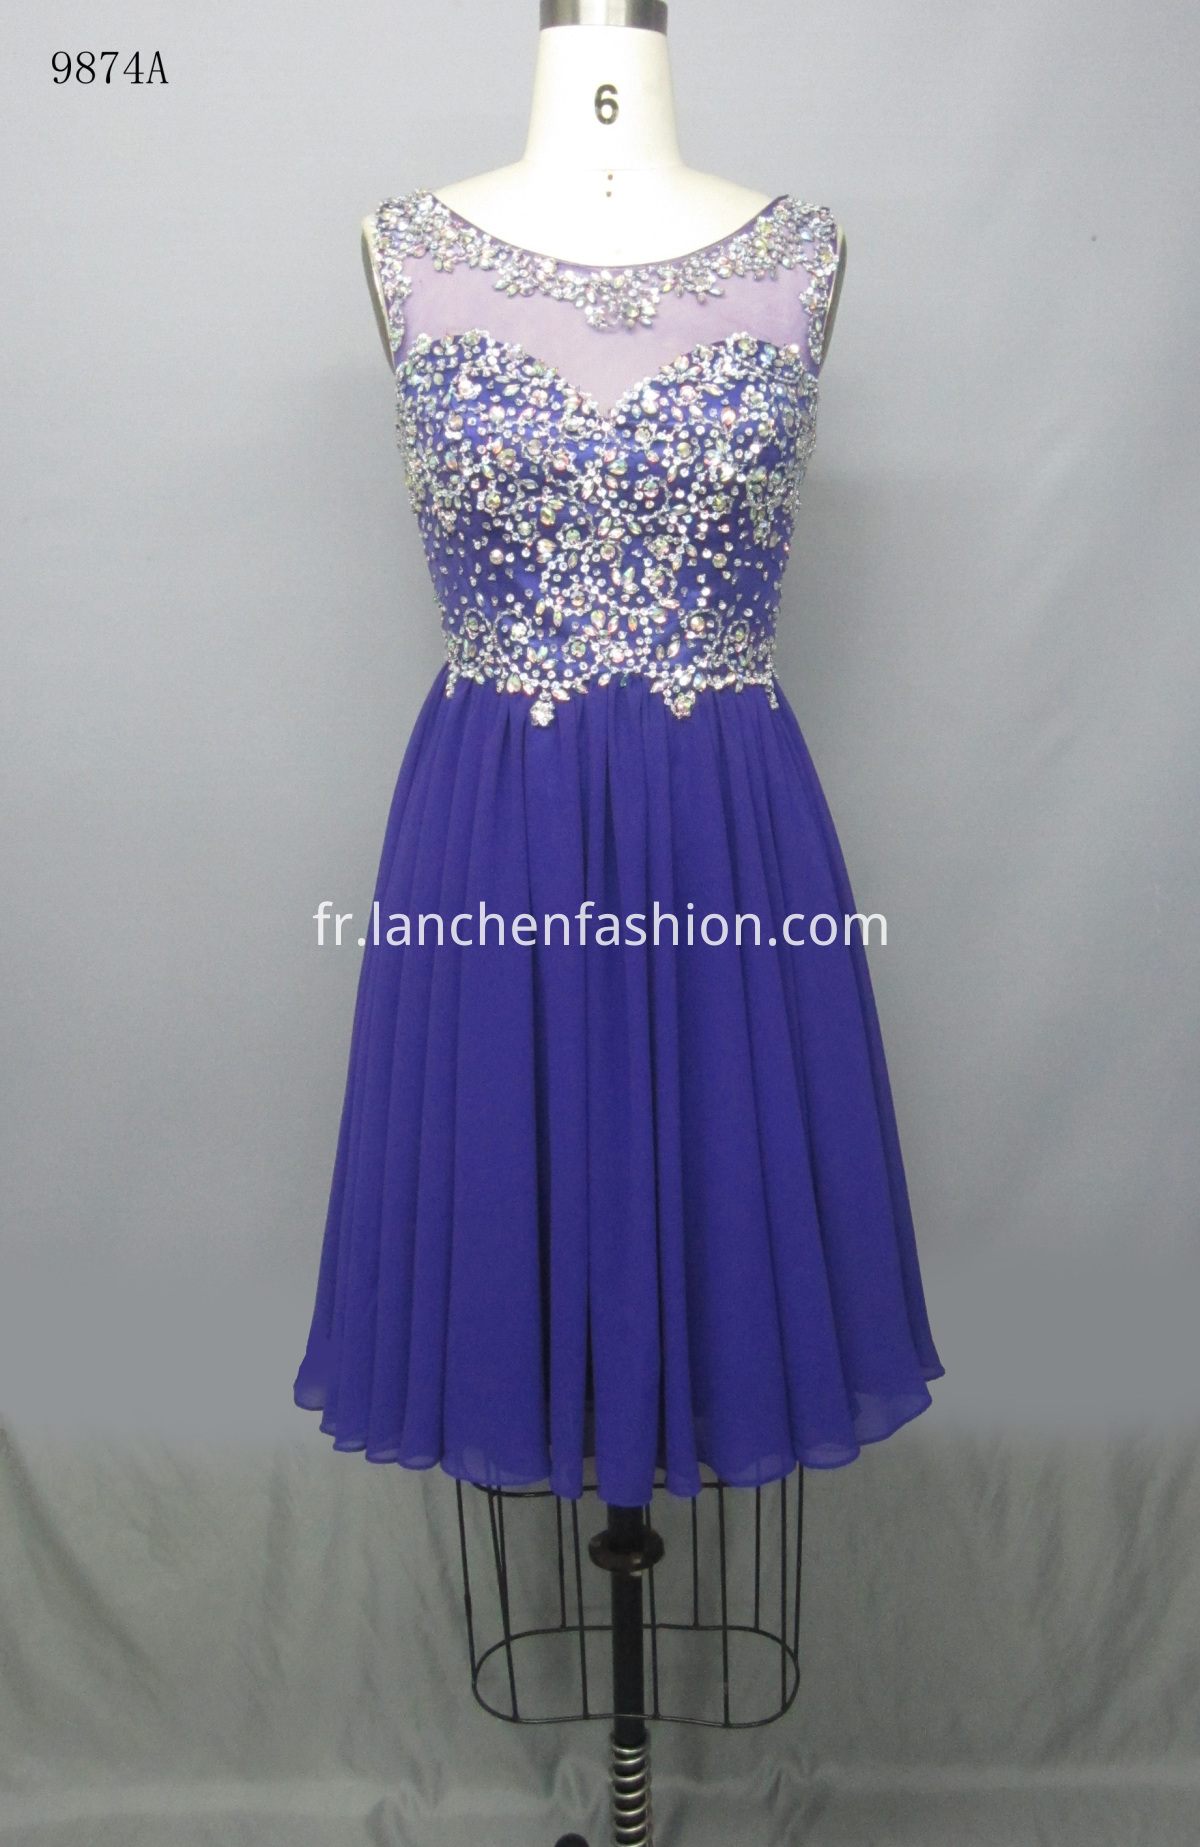 Chiffon Dress PURPLE